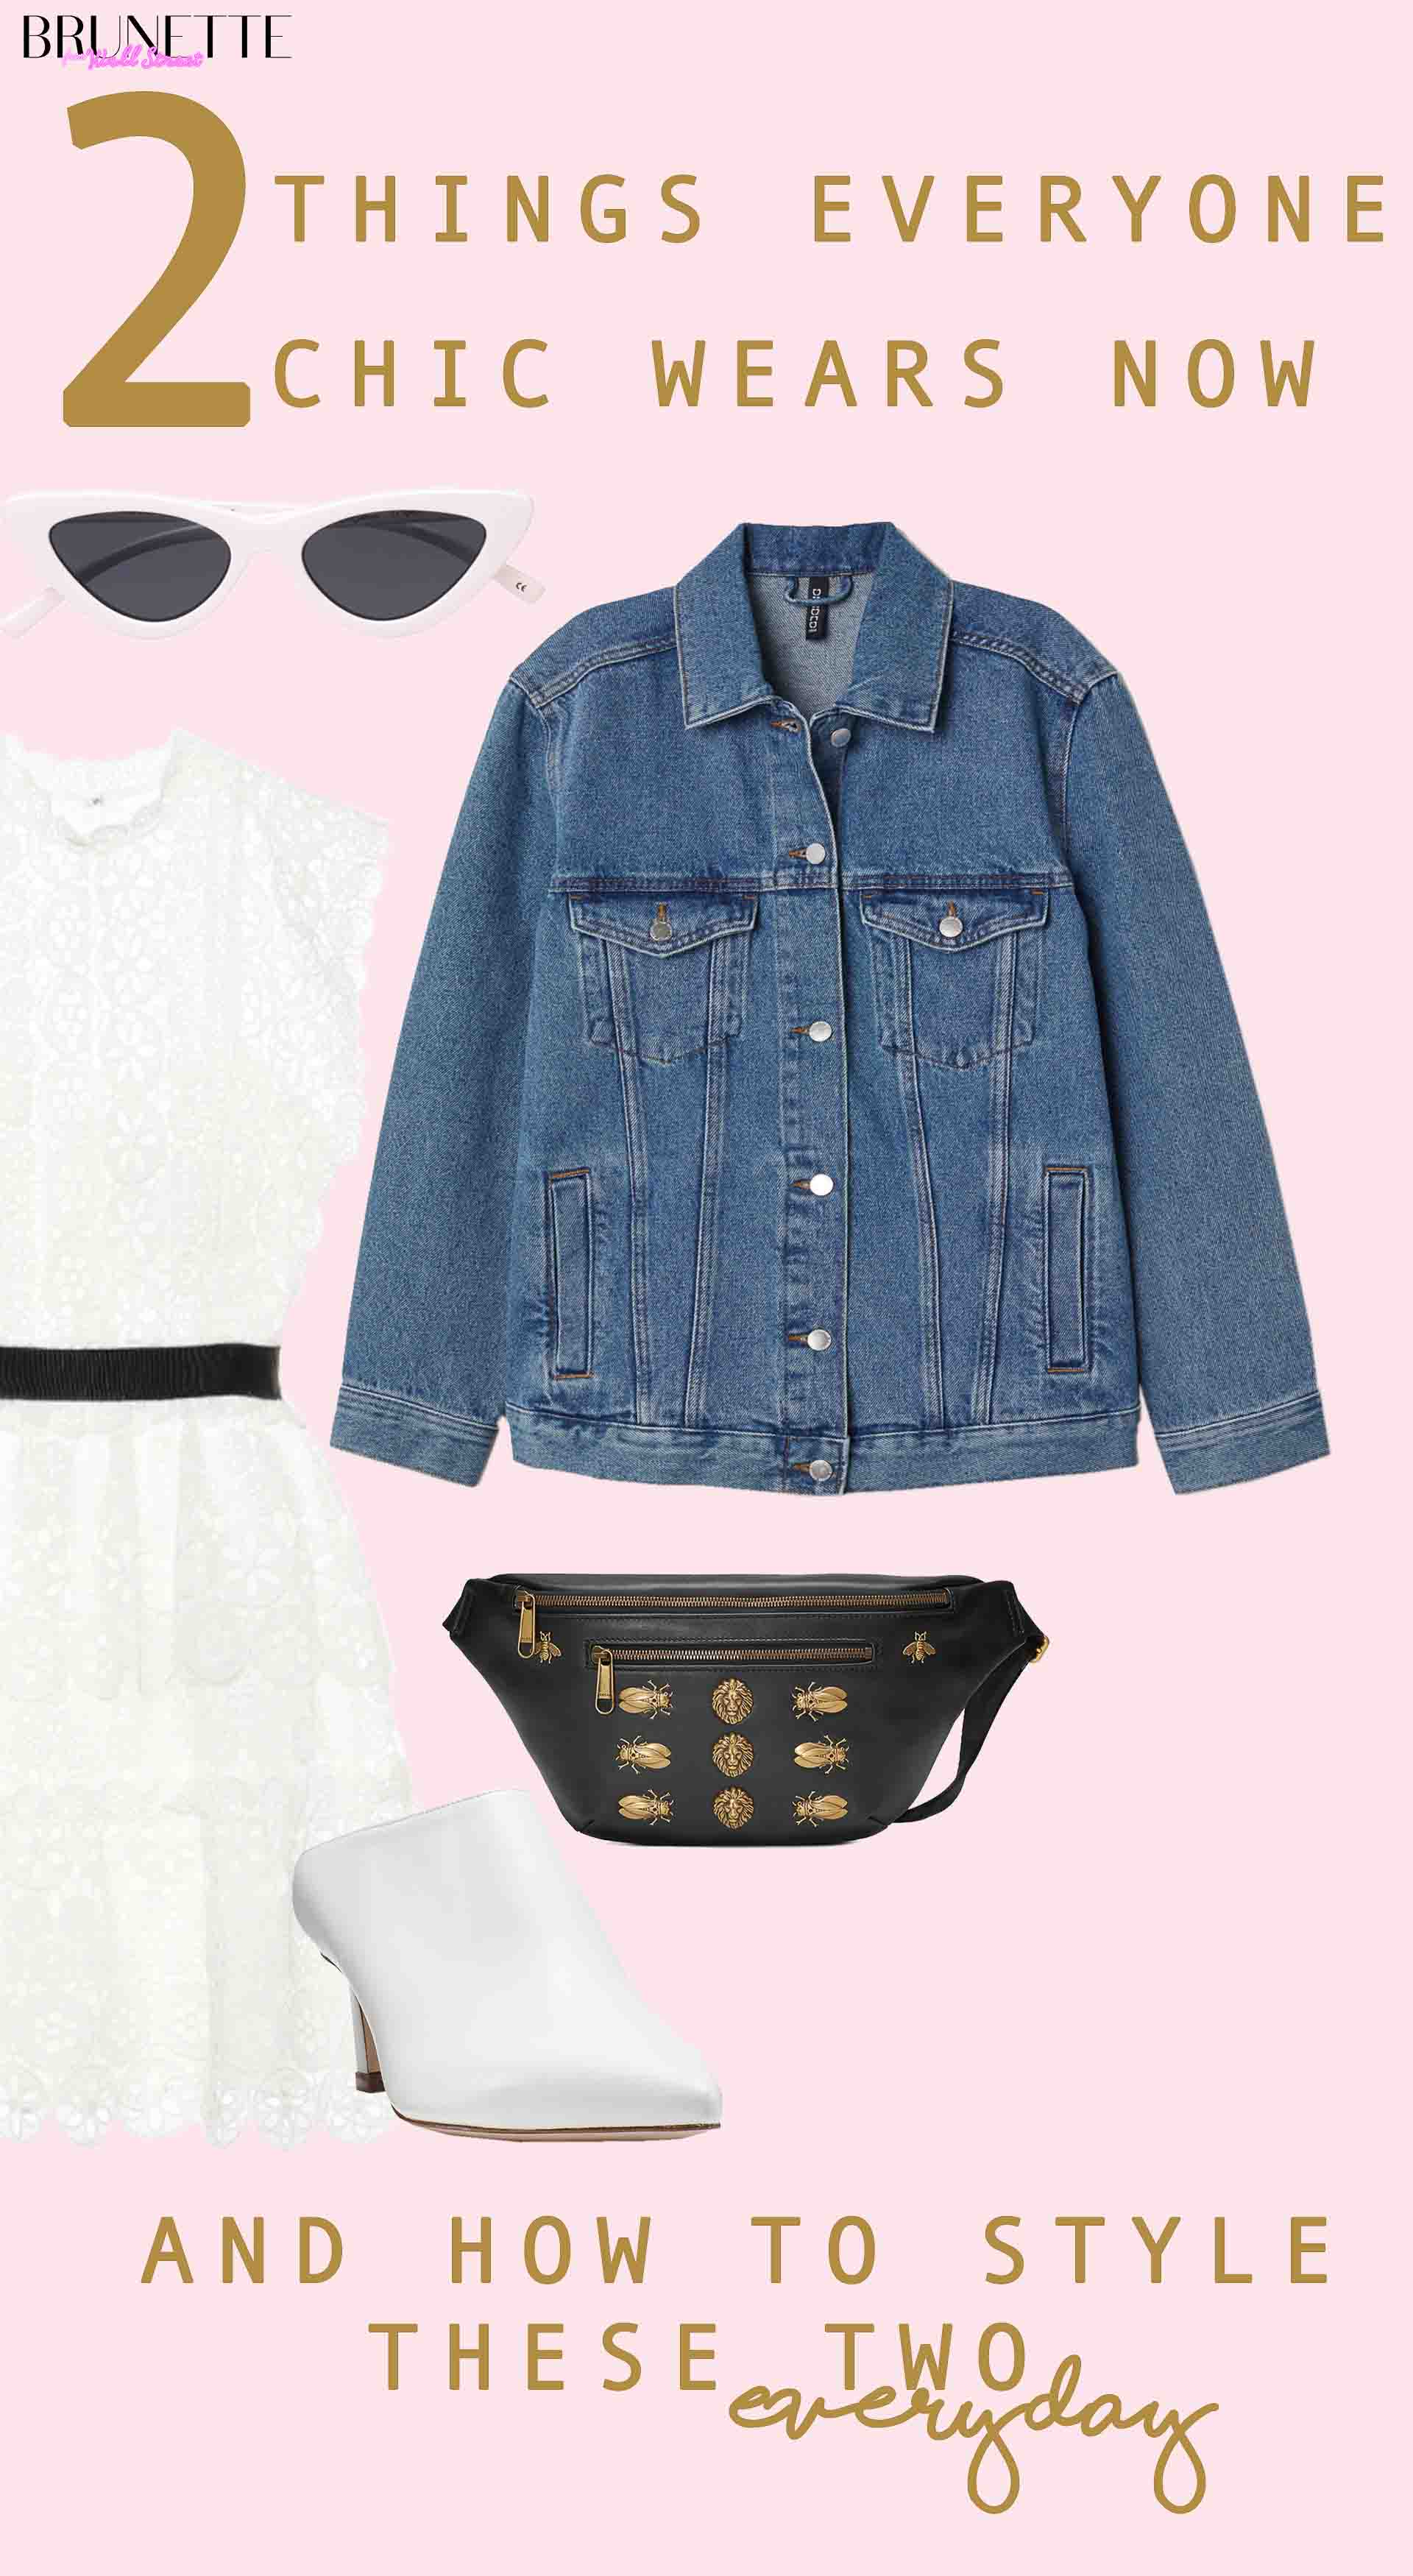 Gucci black beltbag, Stuart Weitzman white mira mules, blue denim jacket, white Self-Portrait dress, Le Specs white lolita cat eye sunglasses with text overlay 2 THINGS EVERYONE CHIC WEARS NOW and how to style these two everyday